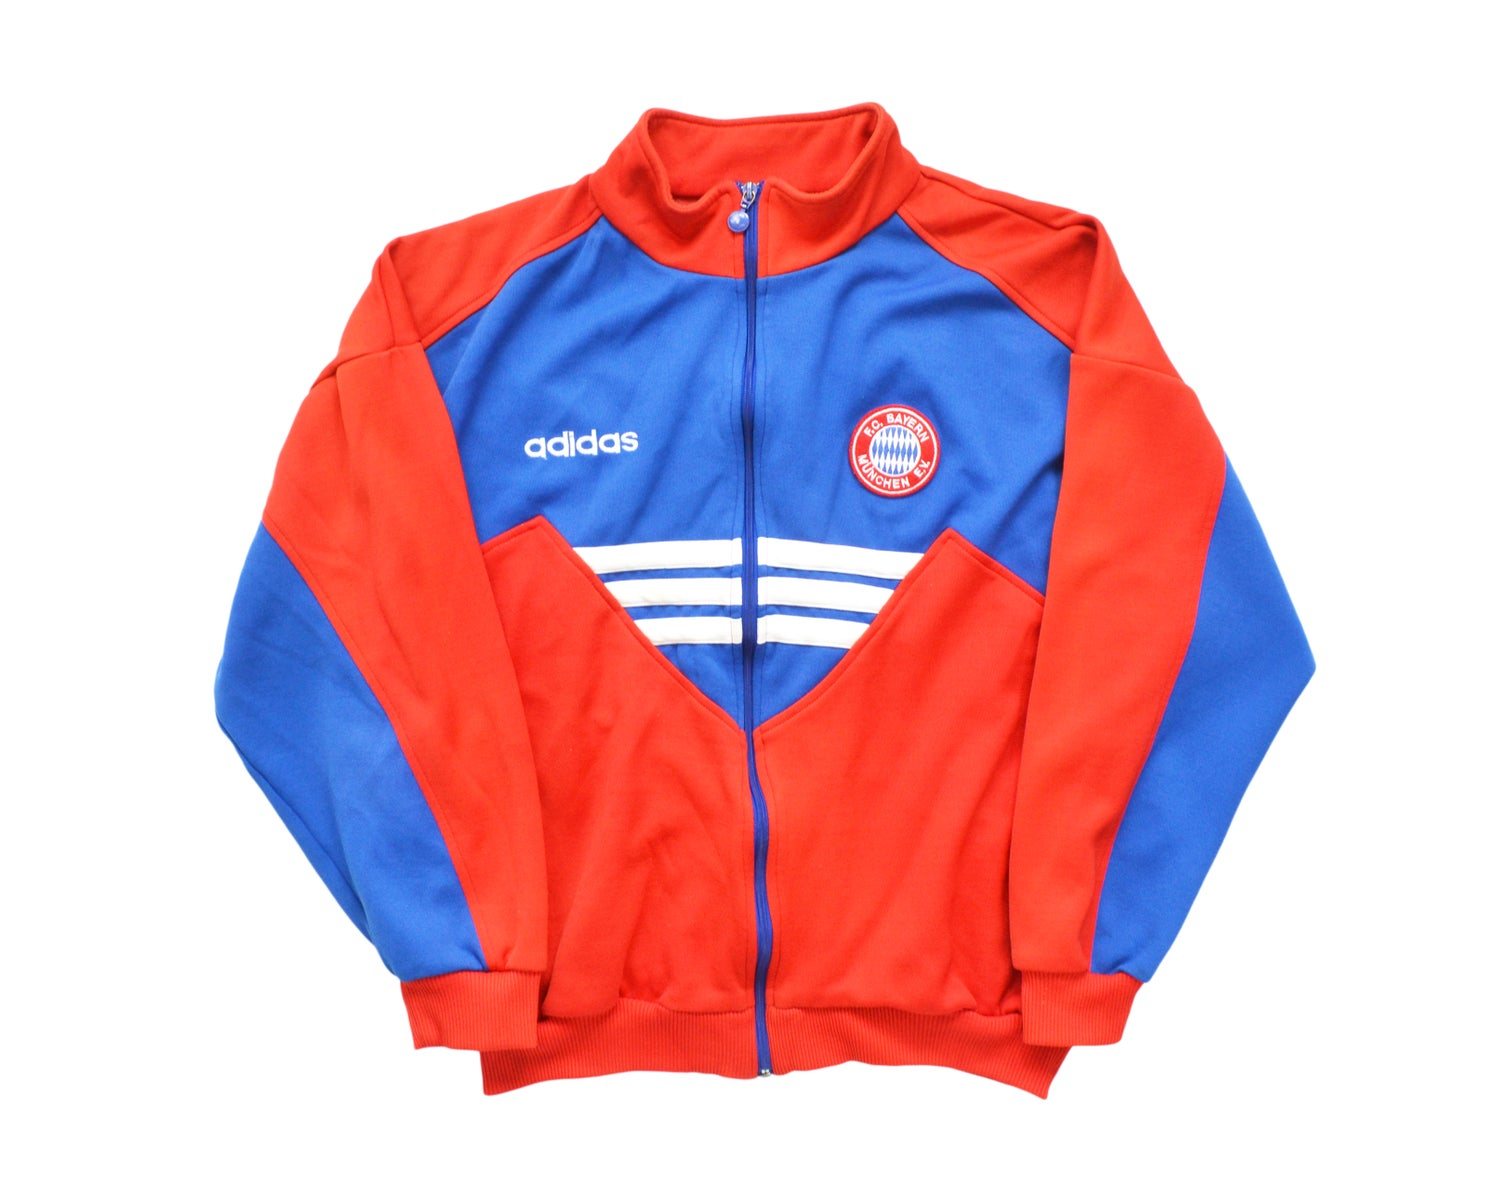 Image of 1993-95 Adidas Bayern Munich Track Top M/L